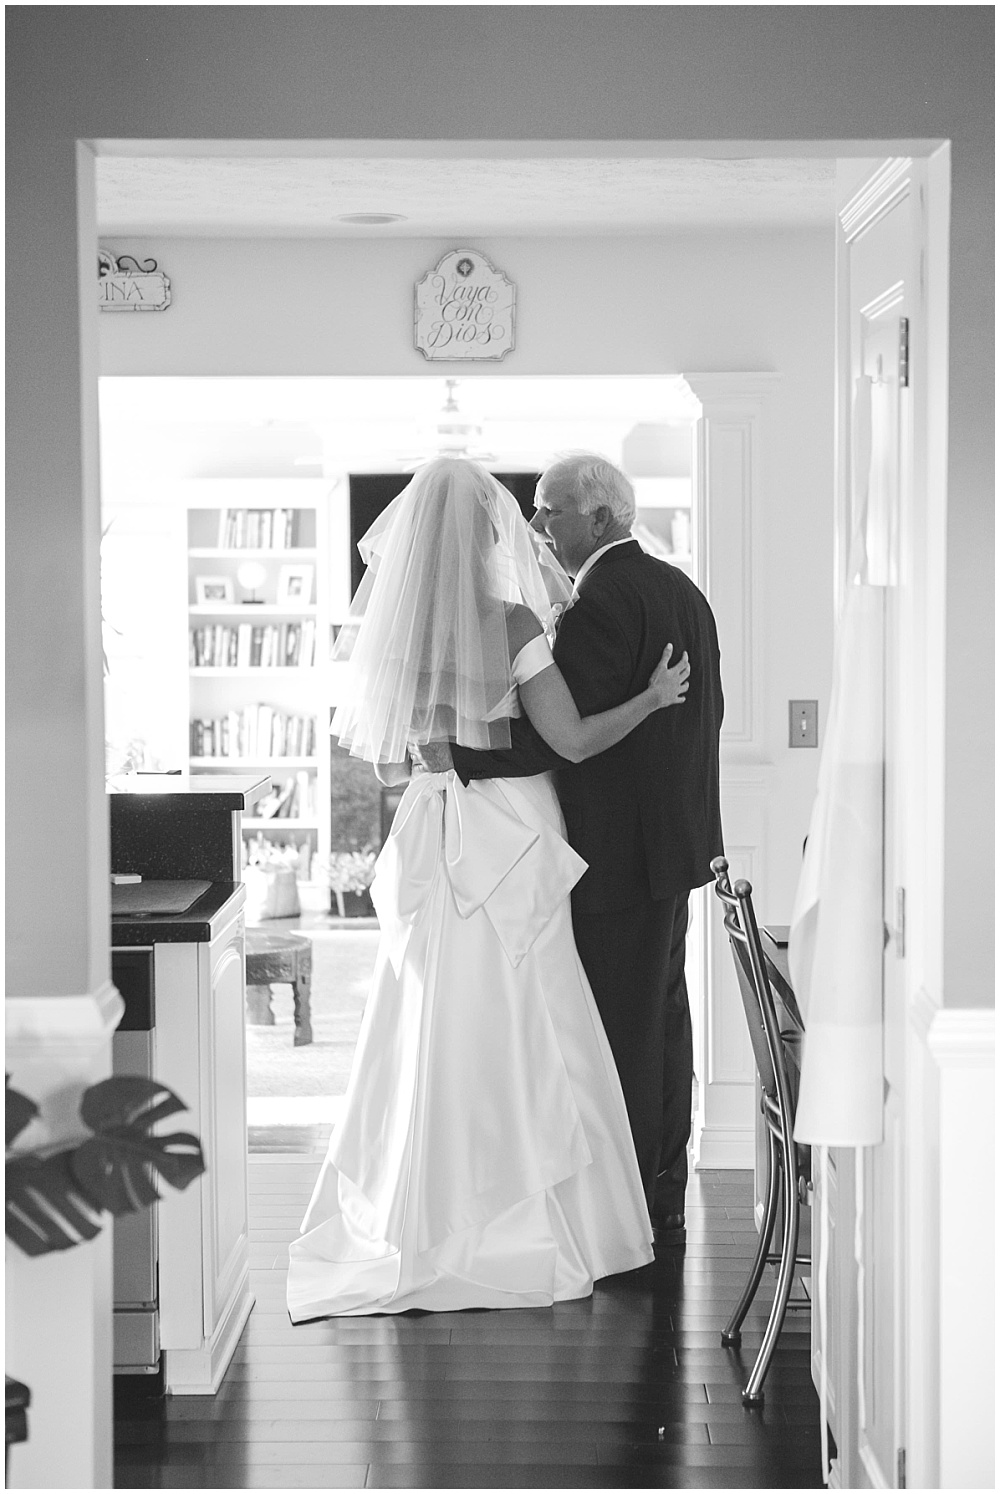 Bride and Father of the Bride moments | Family Farm wedding by SB Childs Photography & Jessica Dum Wedding Coordination